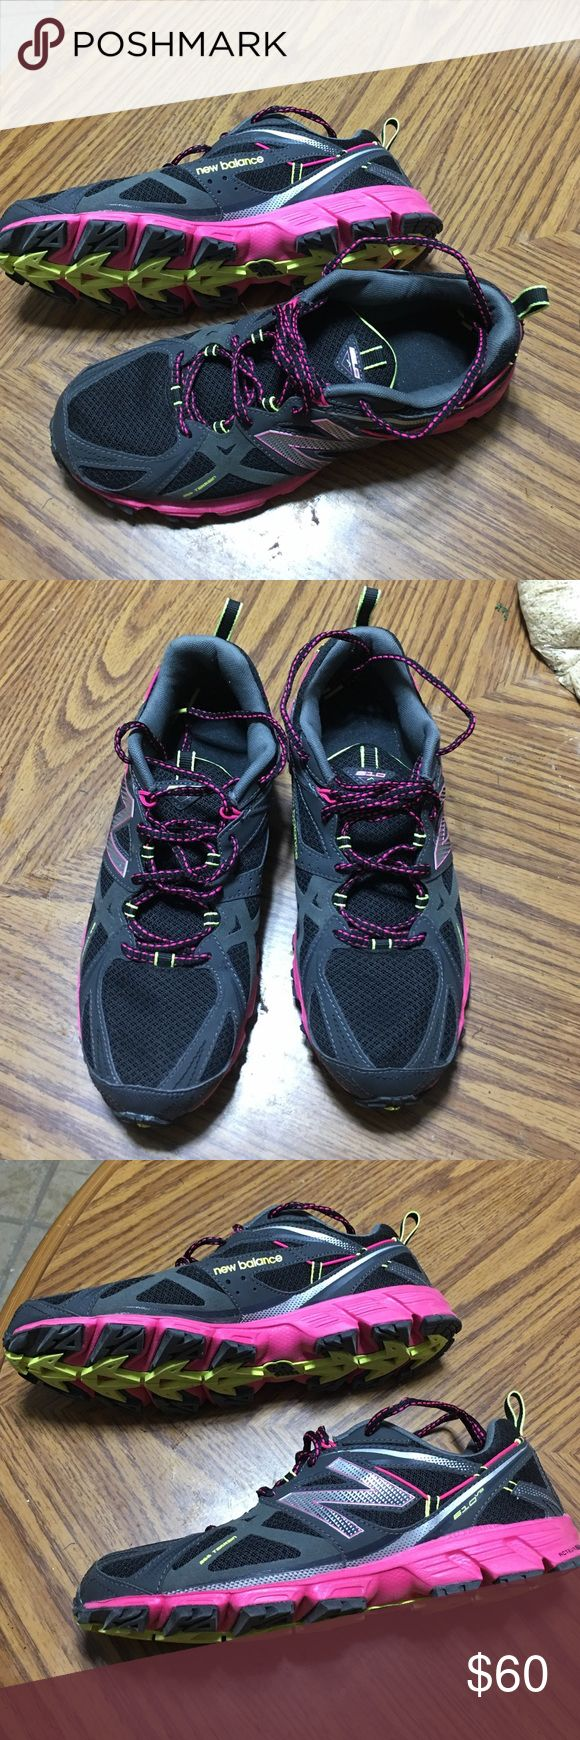 Women New Balance 610 v3  Running Shoes Size 10.5 Women New Balance 610 v3 Trail Running Shoes Size 10.5 Great shape as you can see on the pictures, worn for a special occasion only.   WT610BP3 New Balance Shoes Athletic Shoes